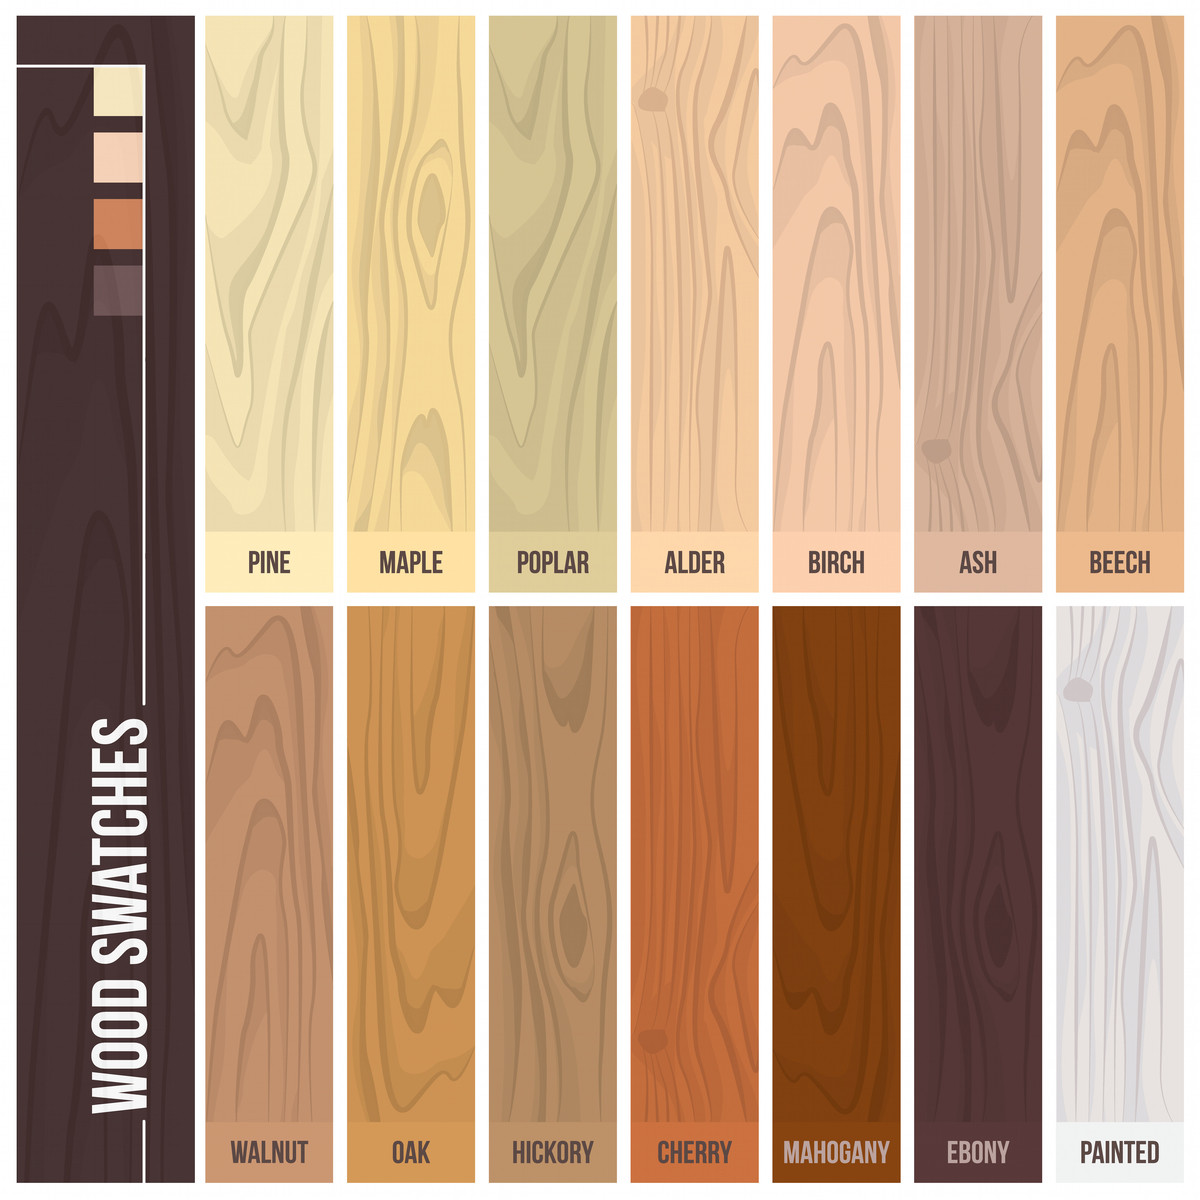 hickory vs red oak hardwood flooring of 12 types of hardwood flooring species styles edging dimensions in types of hardwood flooring illustrated guide